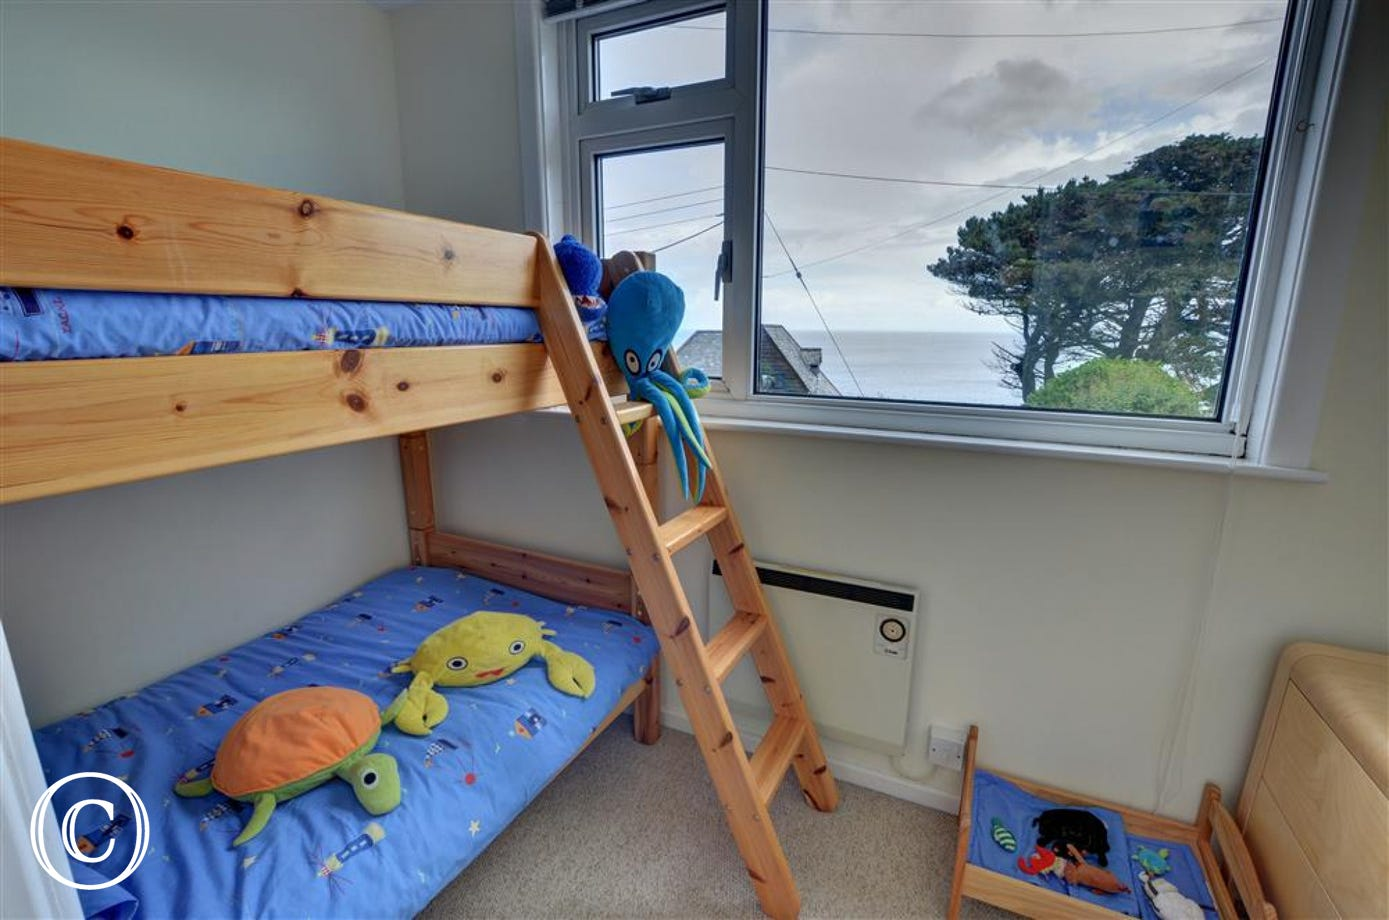 Bedroom 6 with short bunk beds suitable for children.